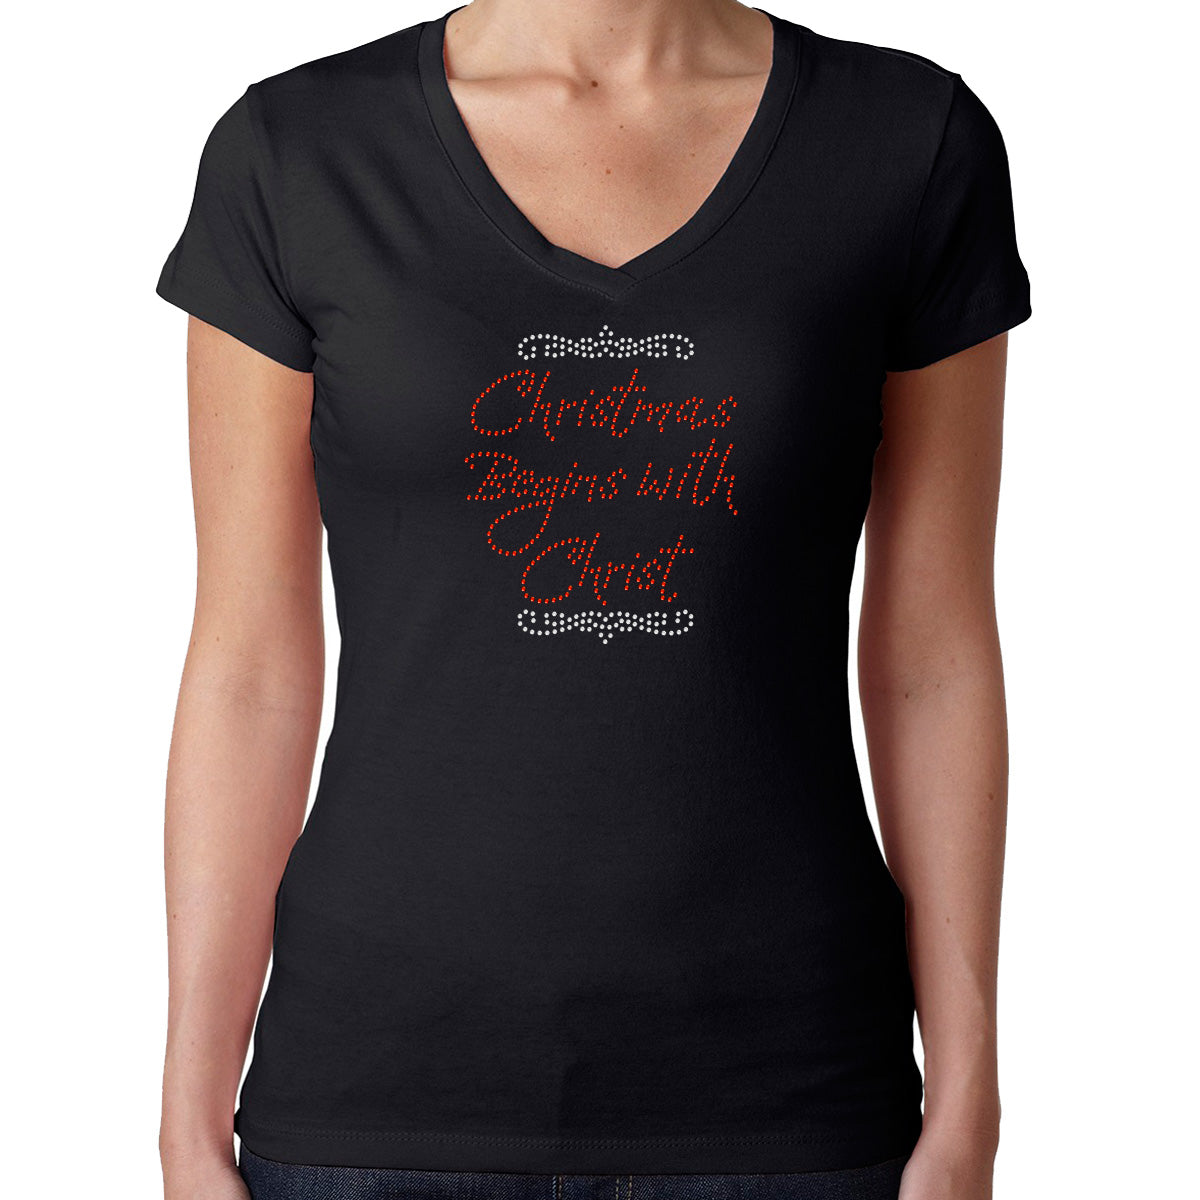 Womens T-Shirt Rhinestone Bling Black Fitted Tee Christmas Begins with Christ